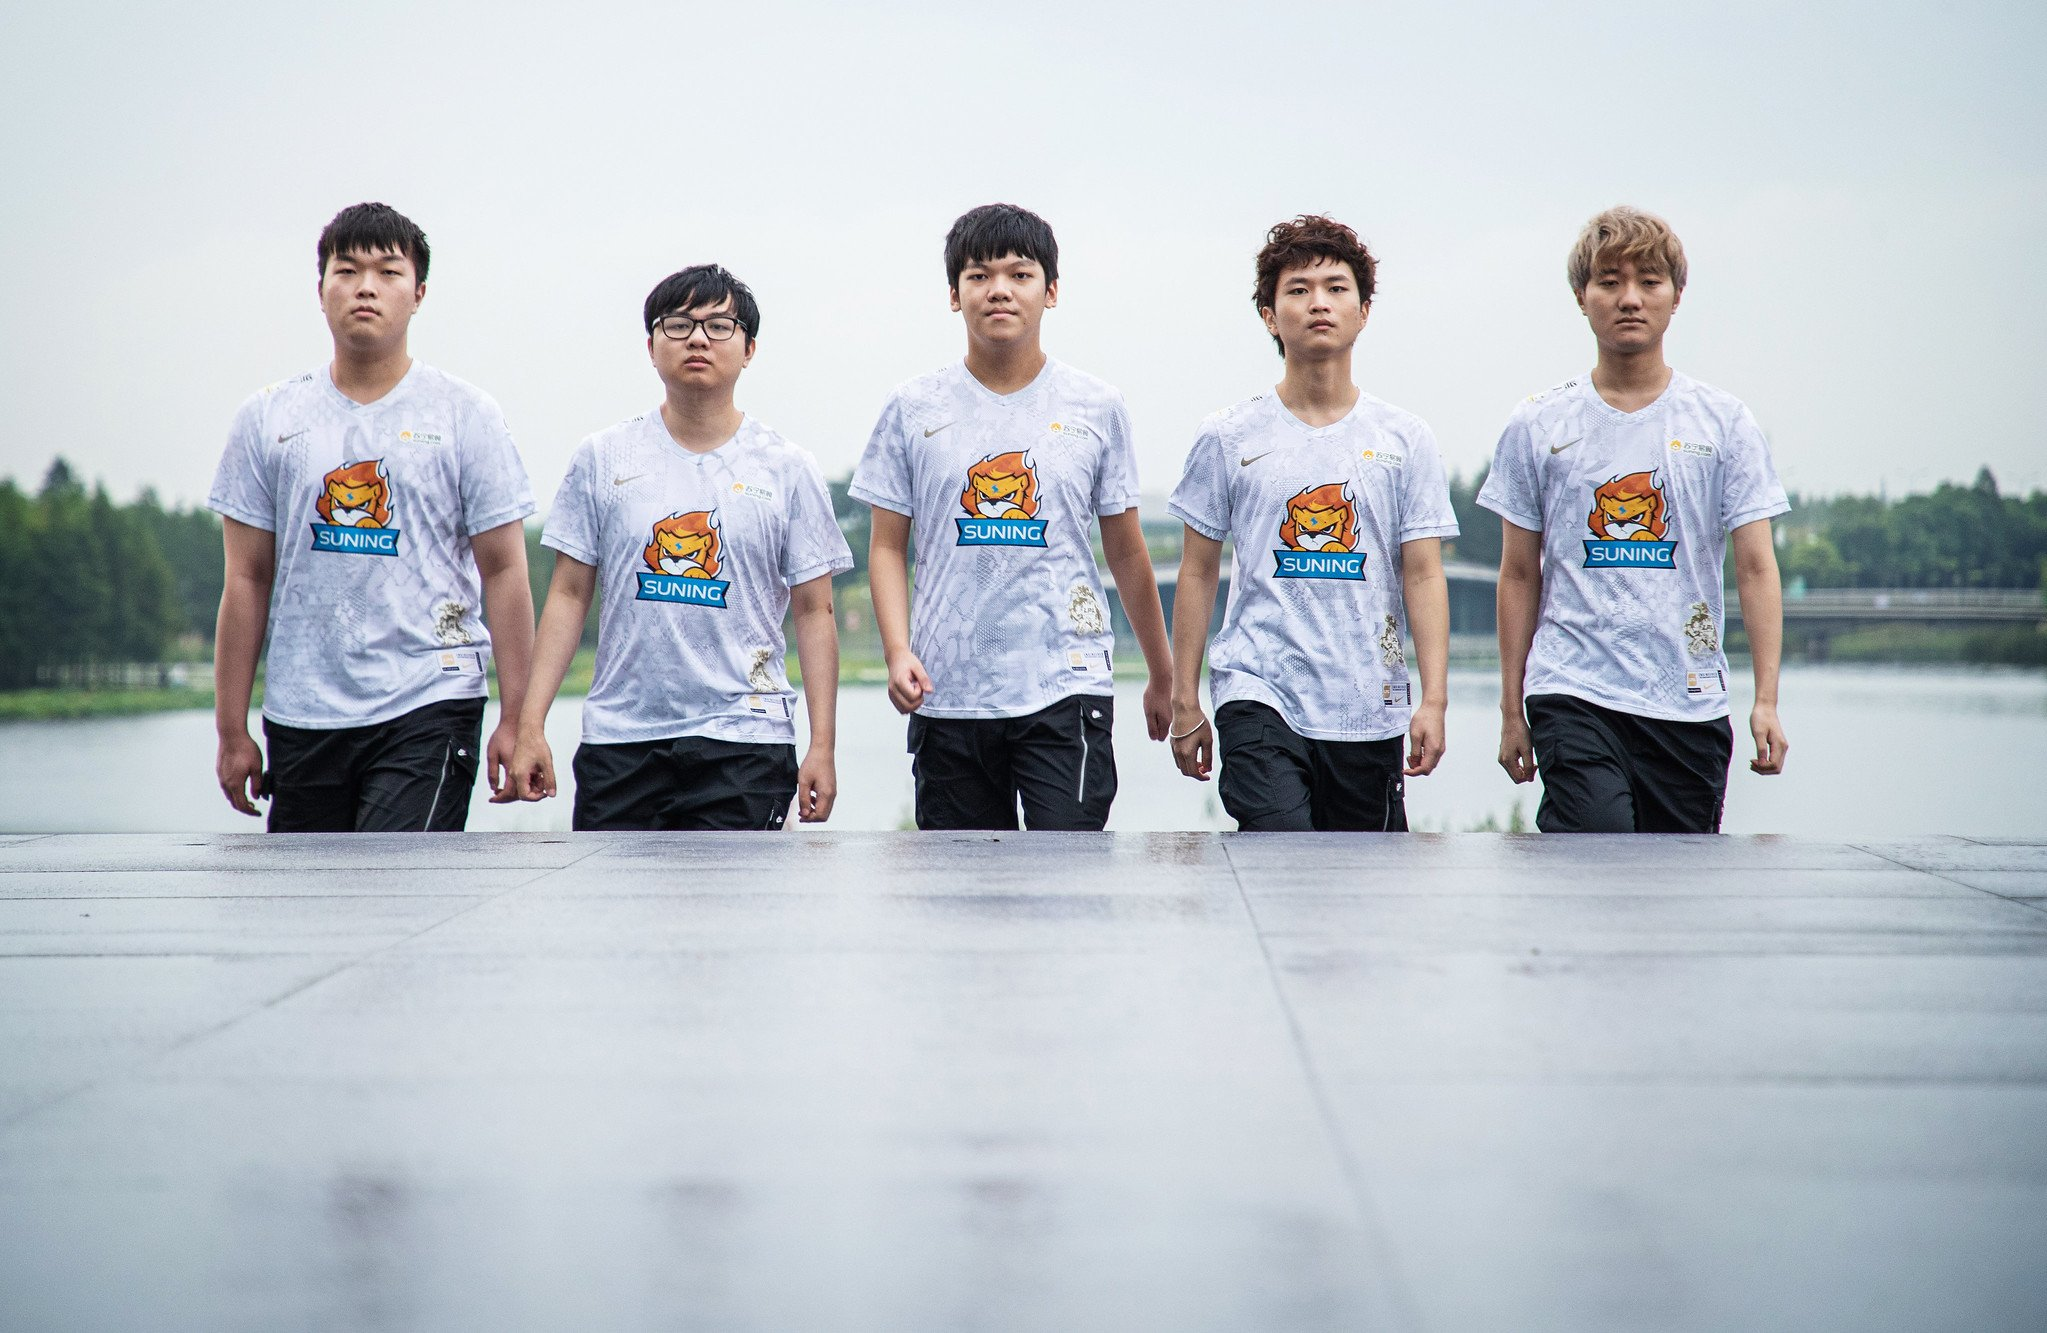 League Of Legends World Championship 2020 Knockout Stage: Suning Took Down JDG To Qualify For Next Round